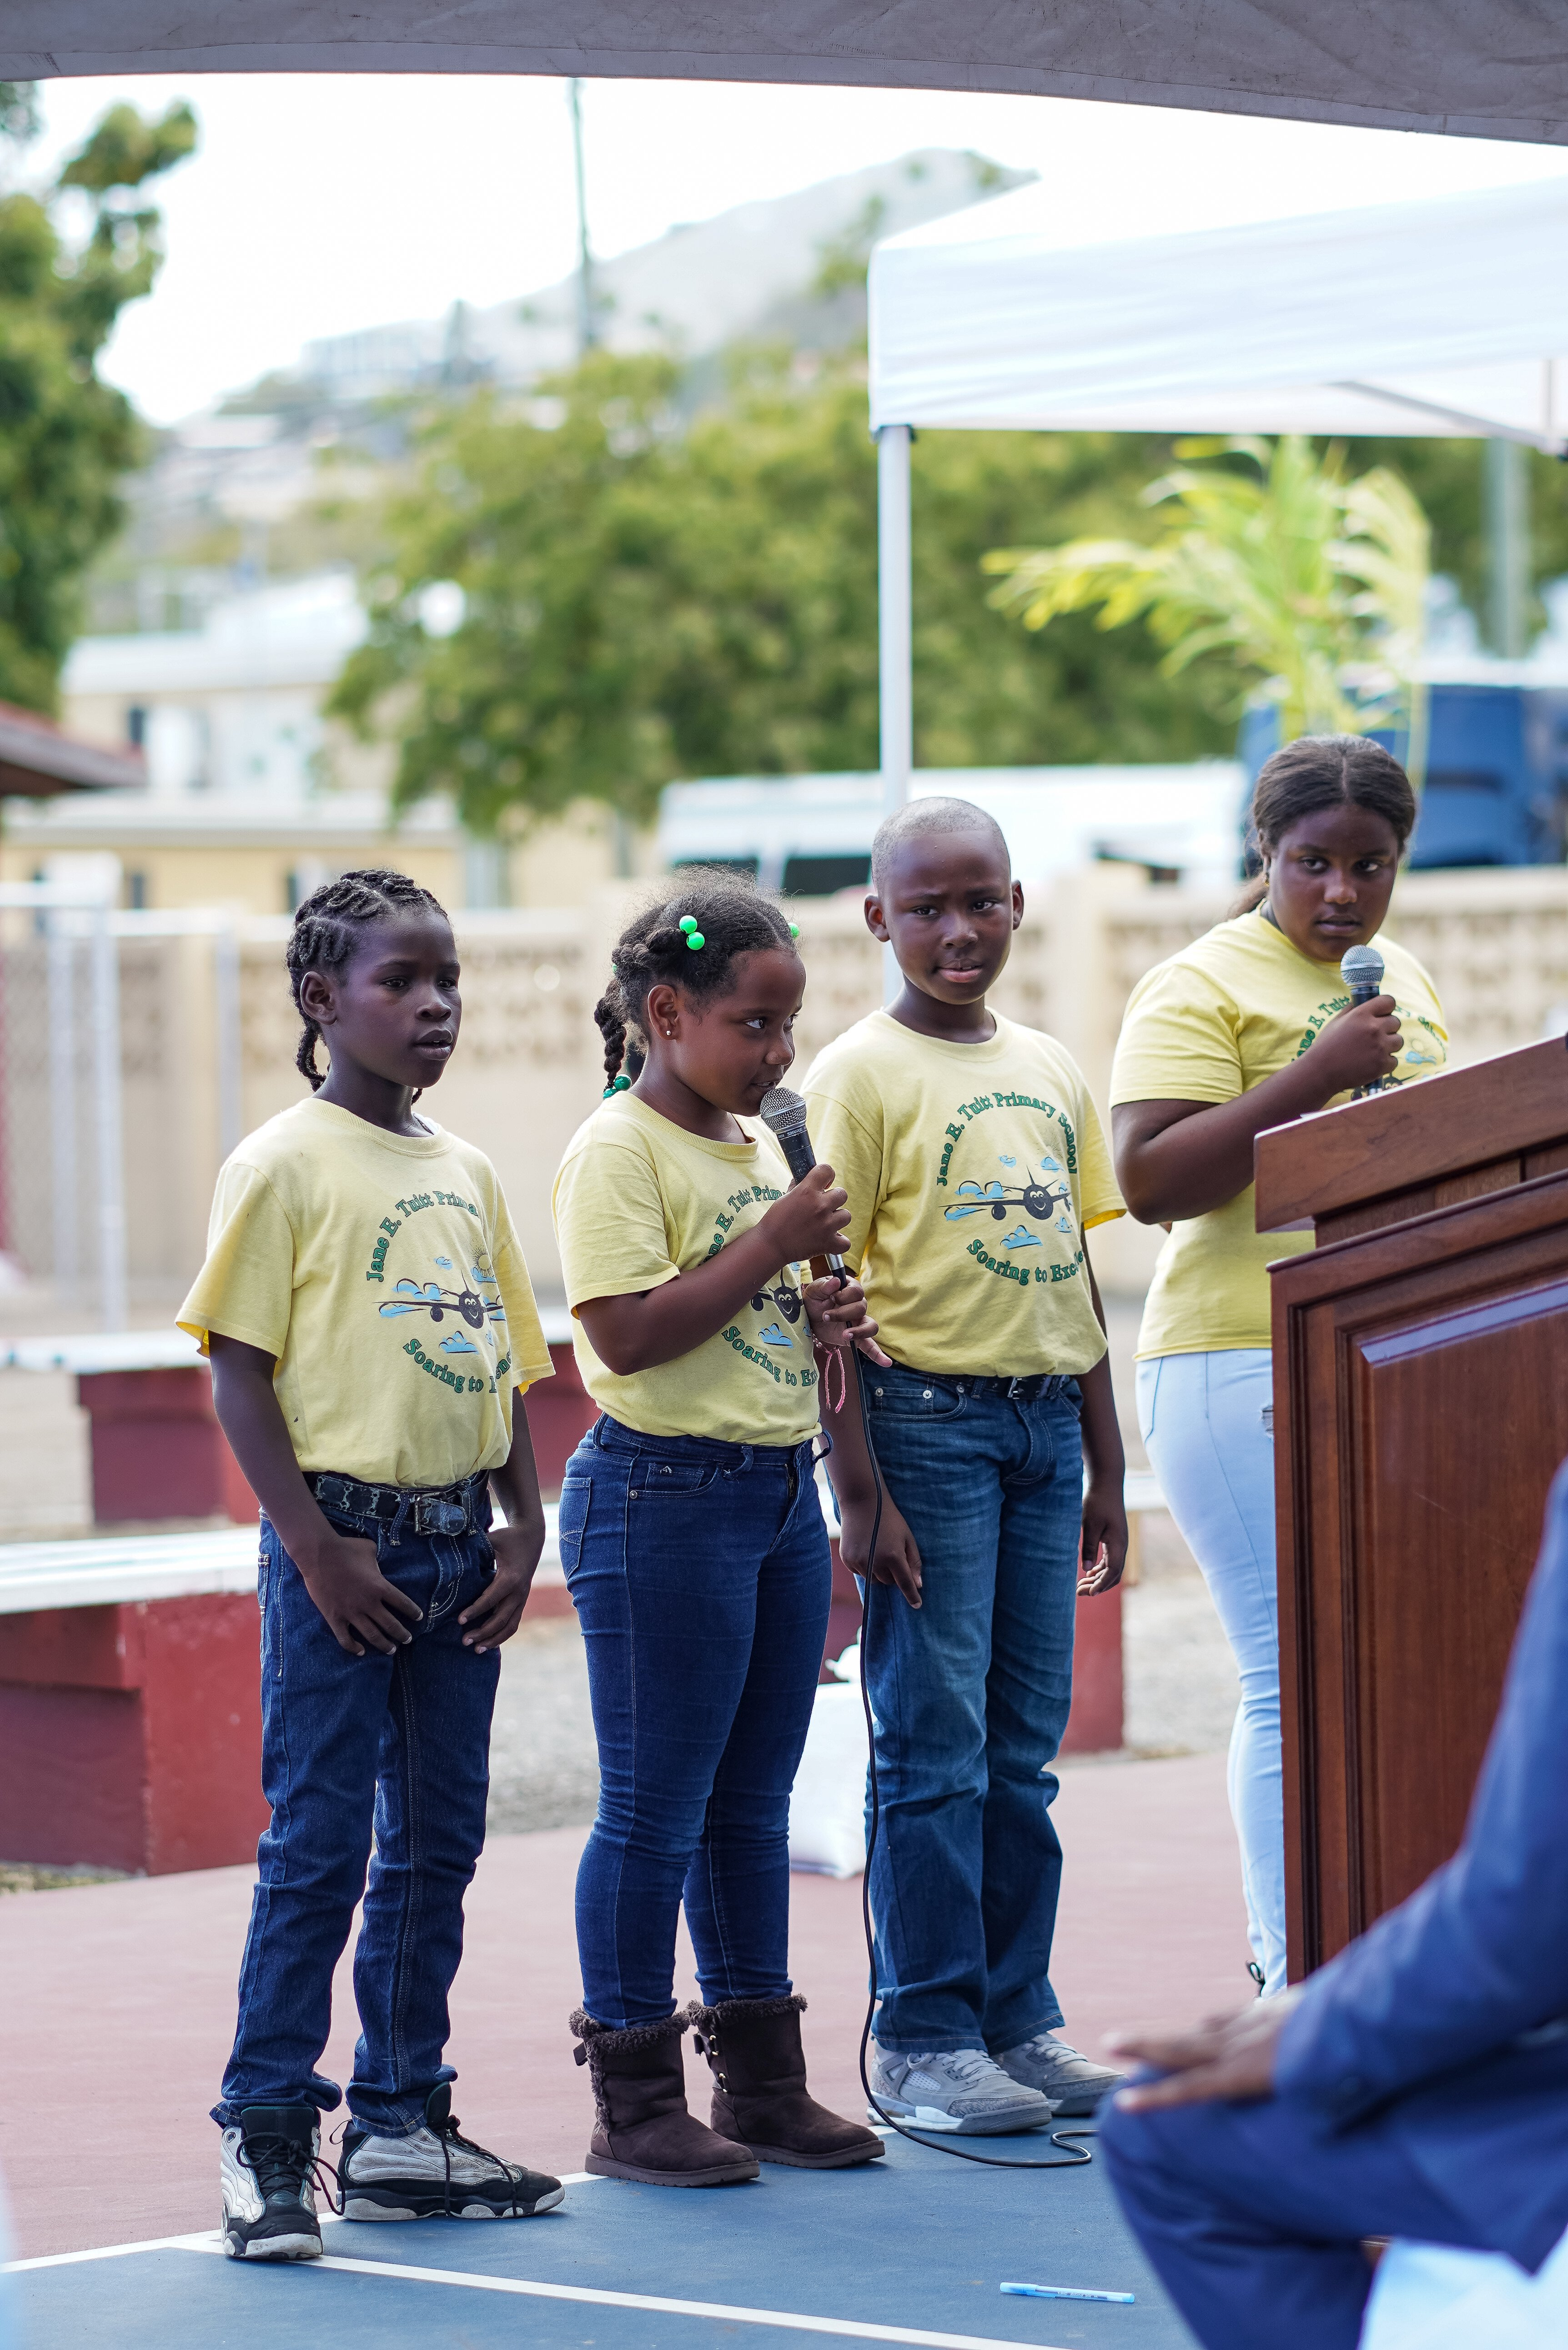 """Carnival Cruise Line and the Community Foundation of the Virgin Islands Unveil Revitalized Griffith Park in St. Thomas with """"Afternoon of Play"""" for Local Children"""